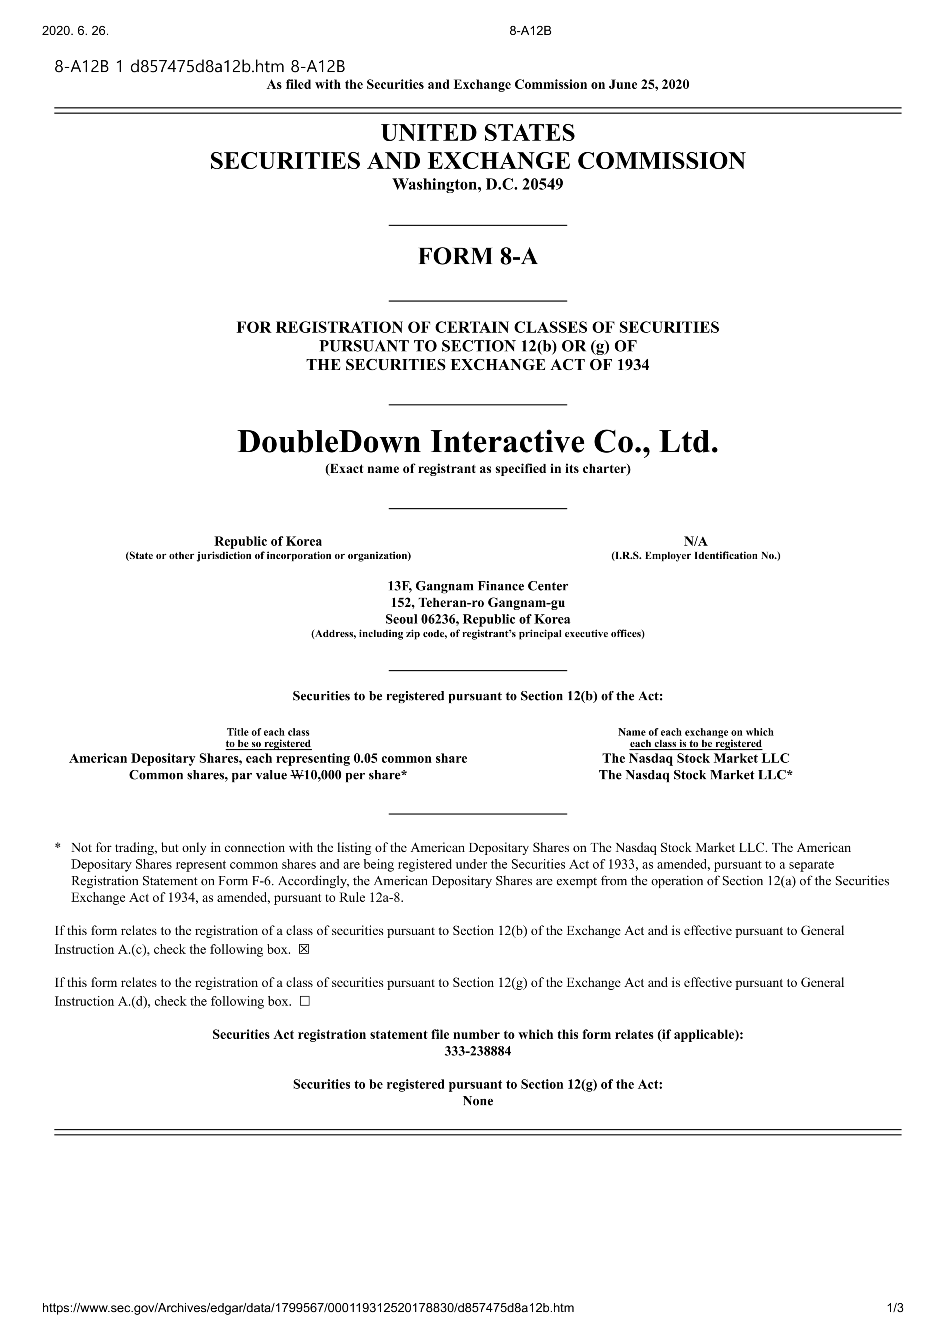 (2020.06.25) FORM 8-A.png